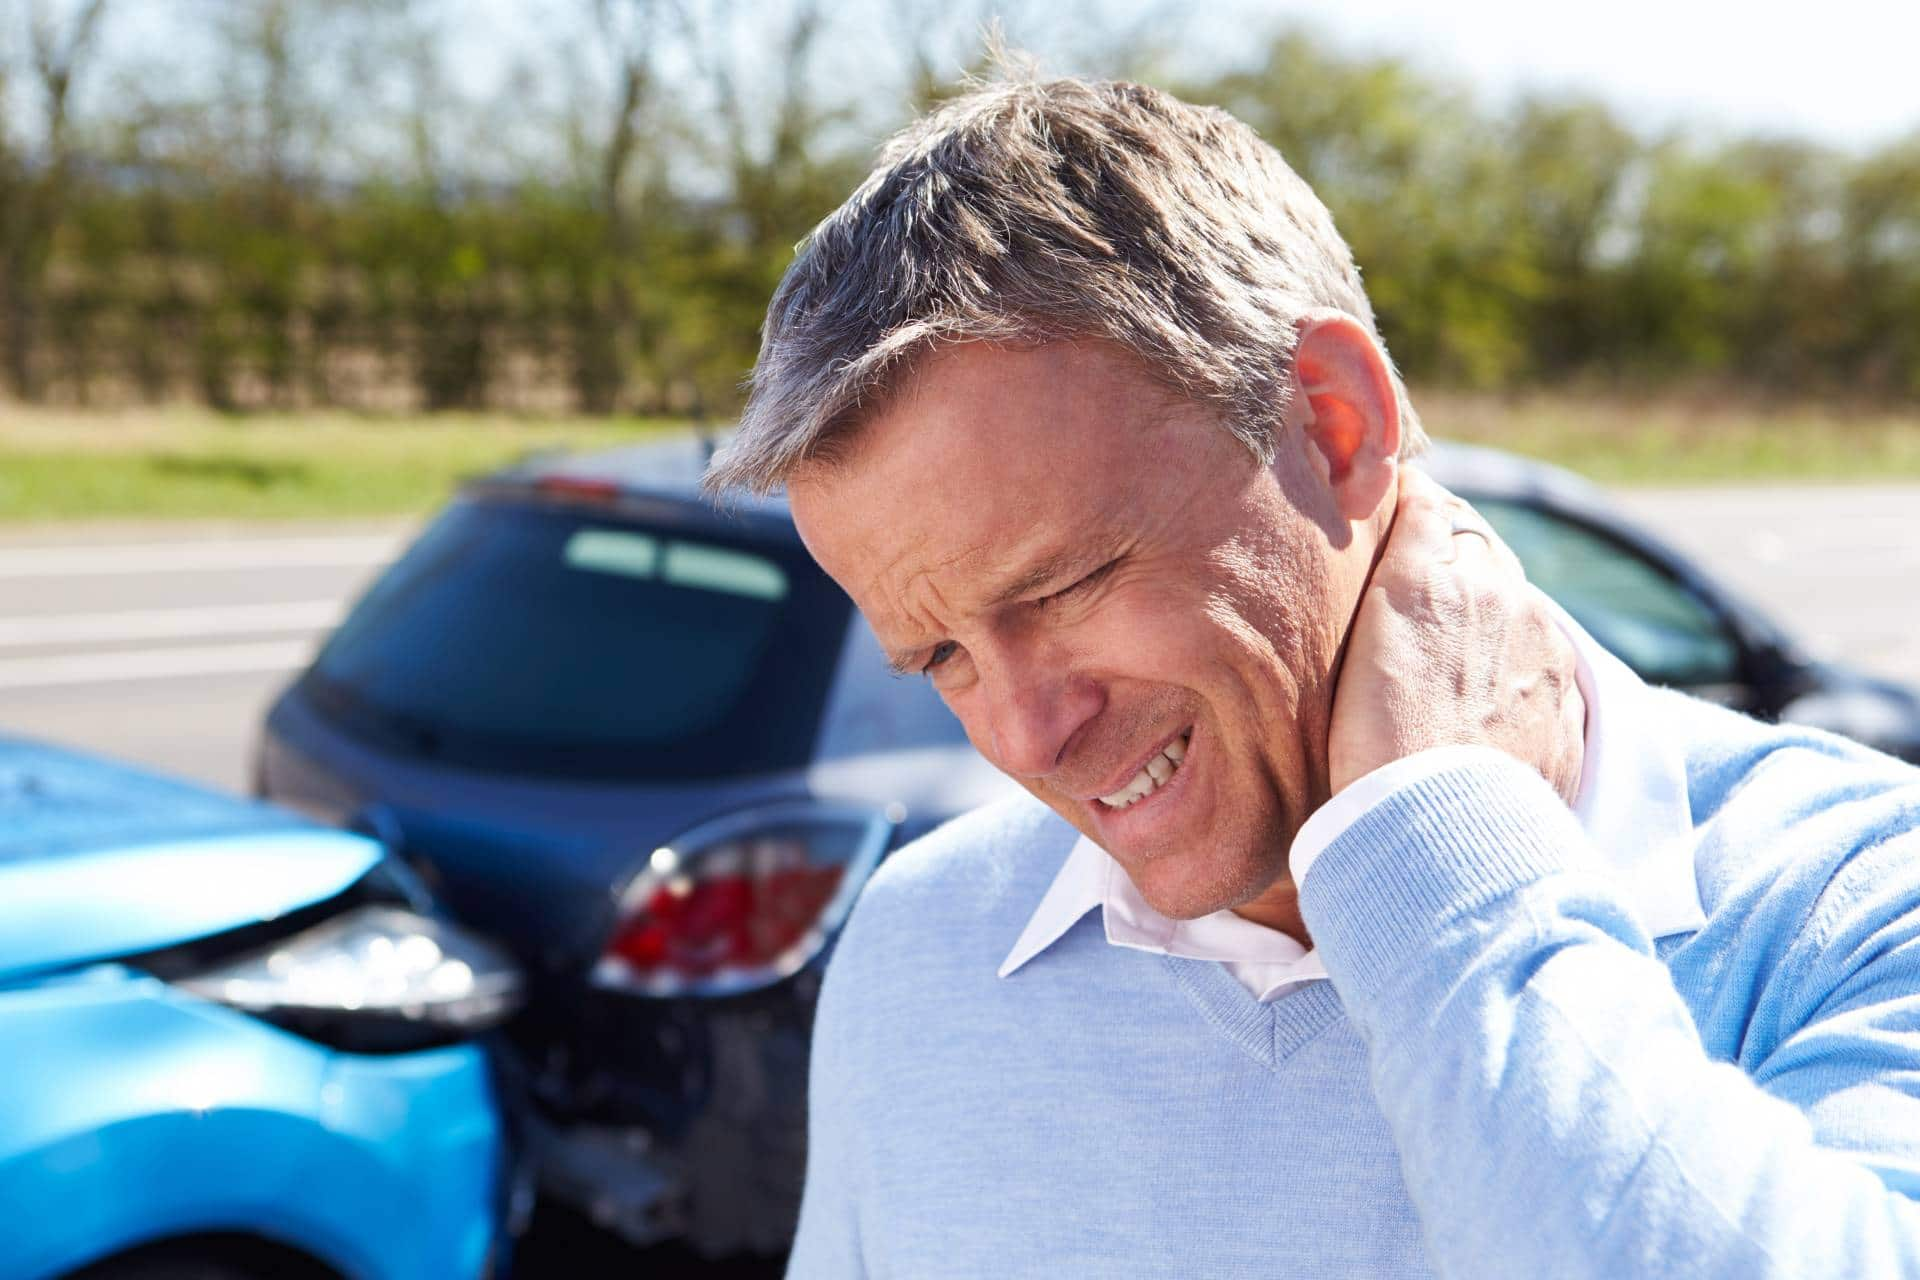 Hurt in a car accident? Schedule a free consultation with our personal injury lawyers at the Angell Firm in Garden Hills.